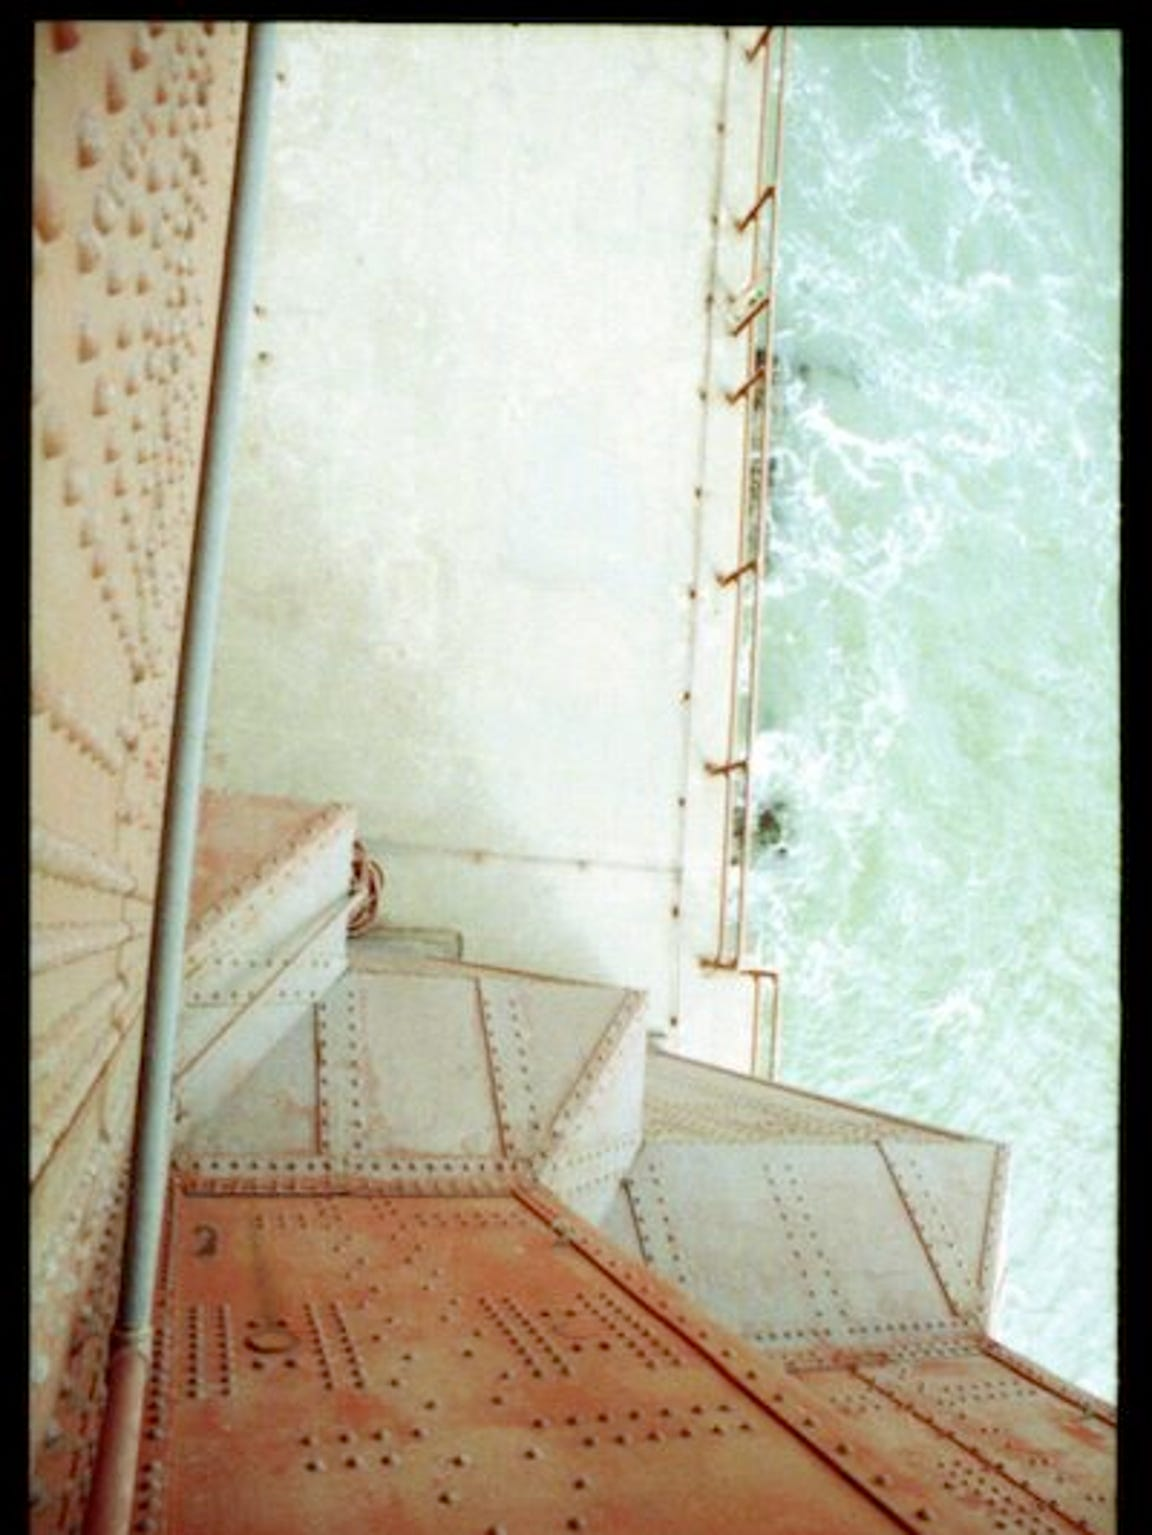 A view from the Golden Gate Bridge in 1982, one of